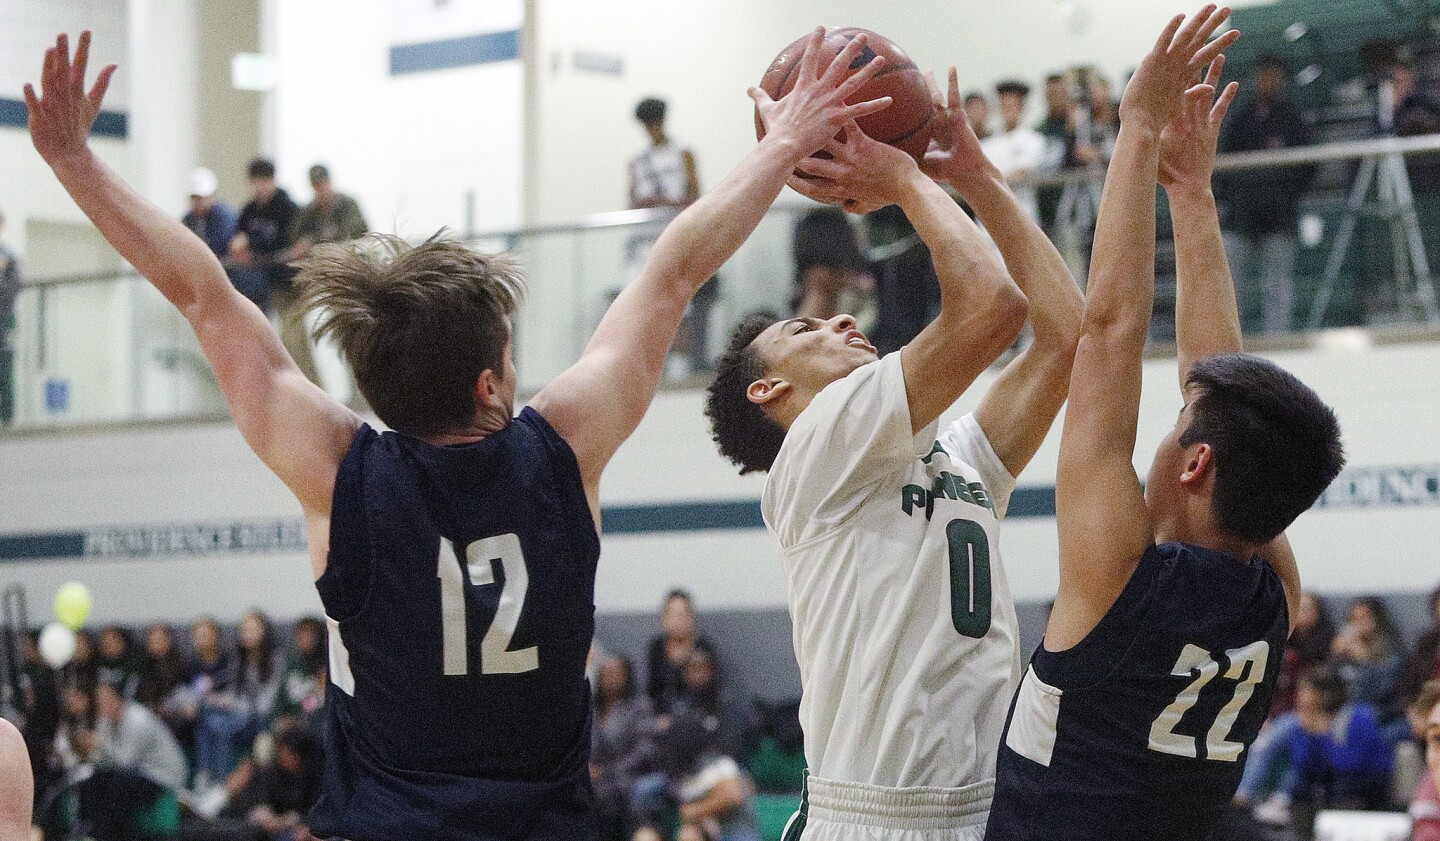 Providence's Jordan Shelley gets to the basket to shoot under defensive pressure from Flintridge Prep's Kevin Ashworth and Zach Kim in a Prep League boys' basketball game at Providence High School auditorium on Tuesday, January 22, 2019.